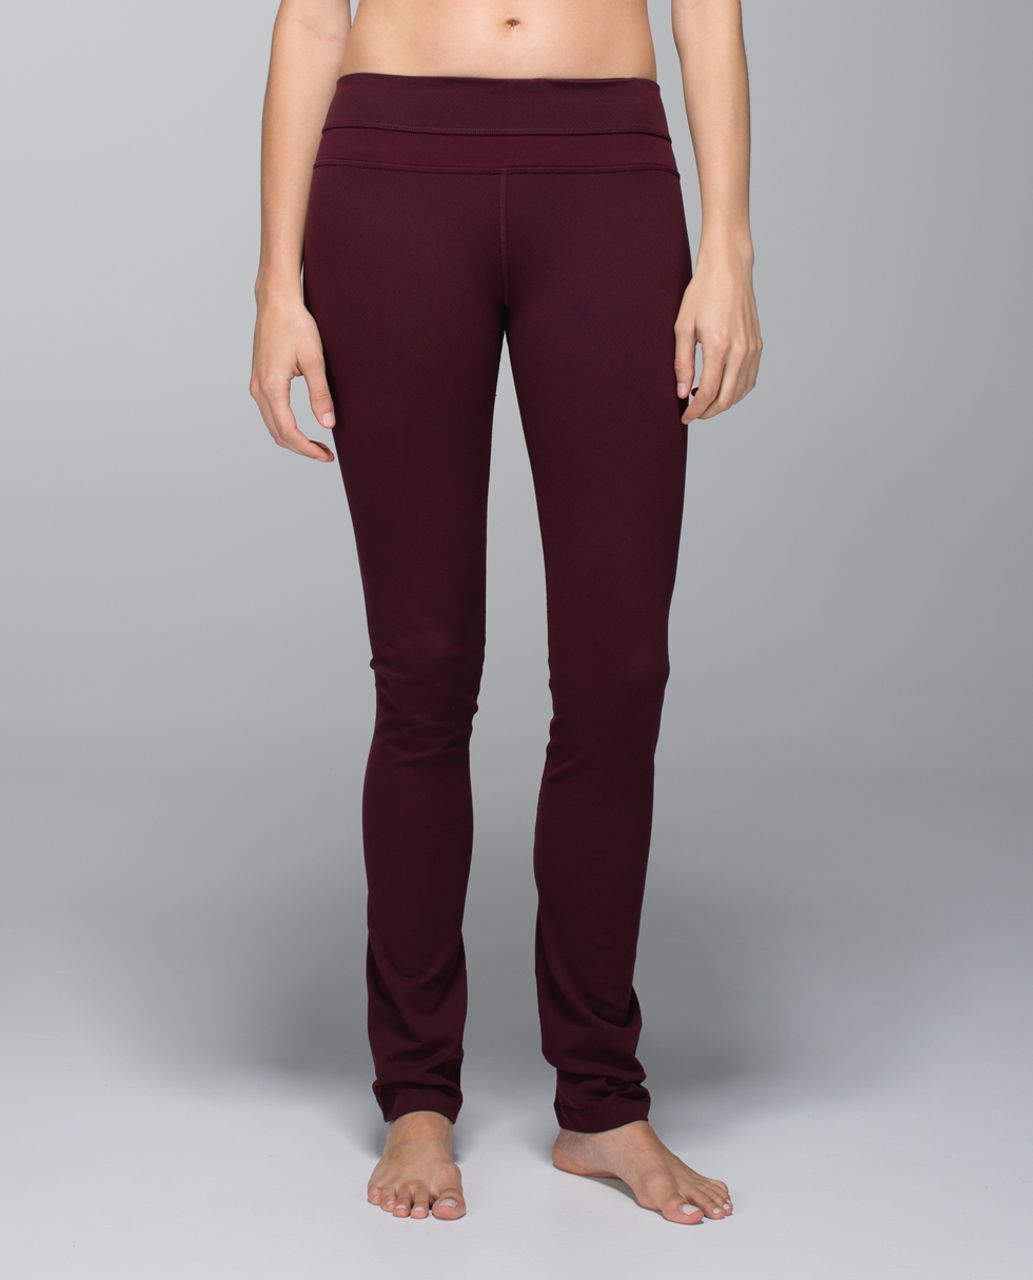 Lululemon Skinny Groove Pant - Diamond Dot Bordeaux Drama Black / Bordeaux Drama